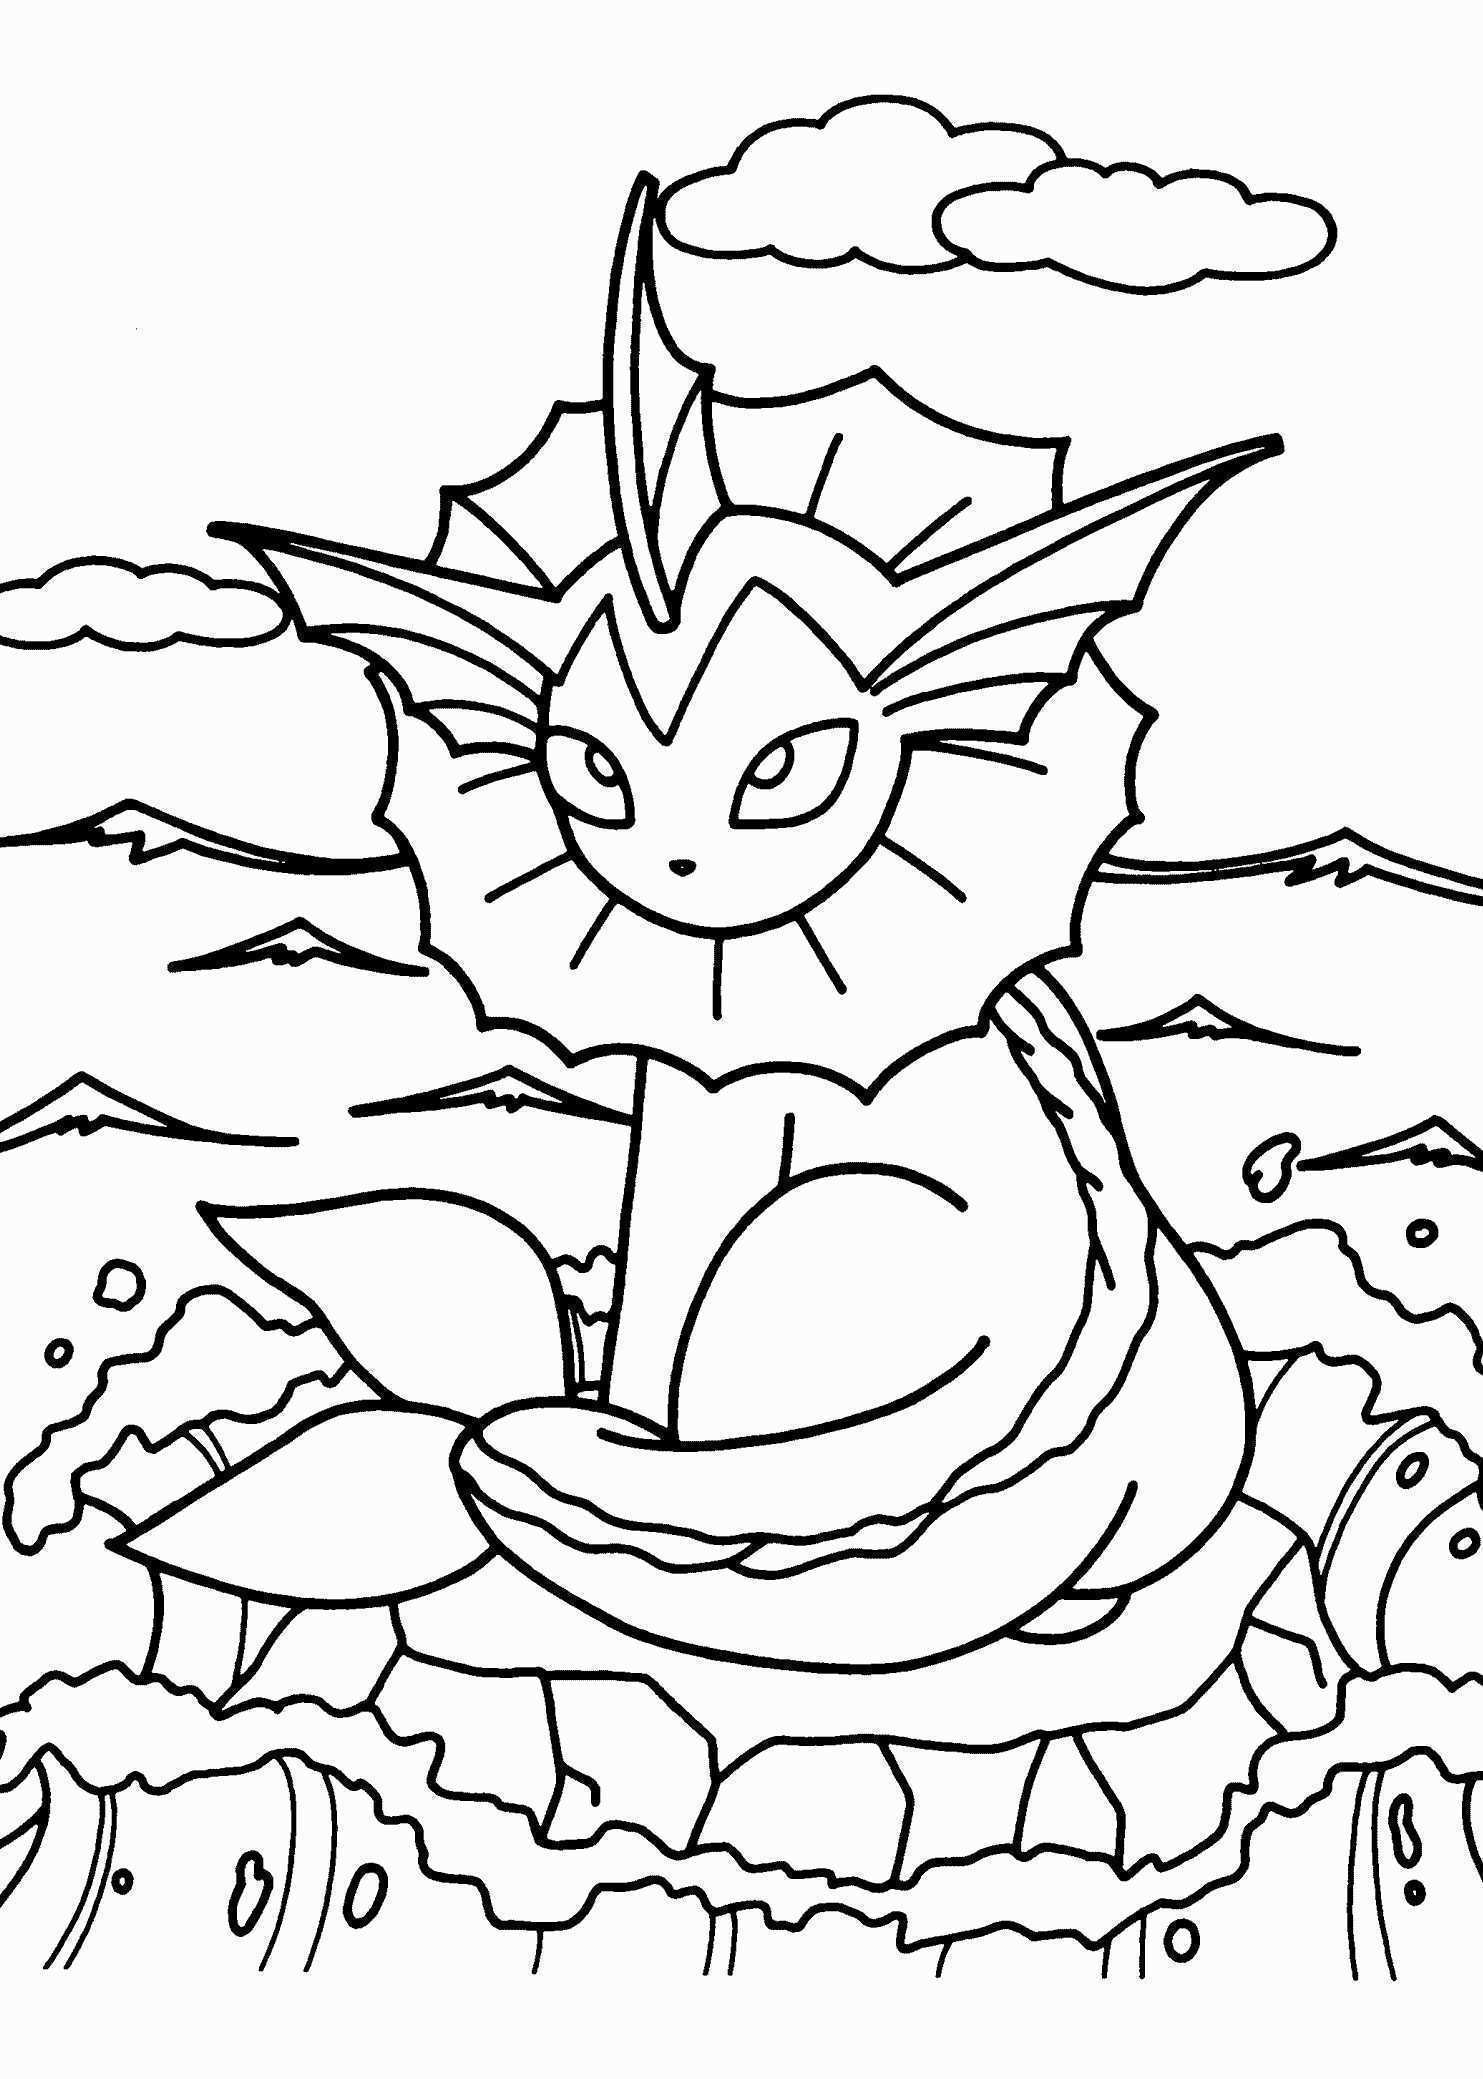 Cheapest Place to Print Color Pages Fresh Printing Coloring Pages